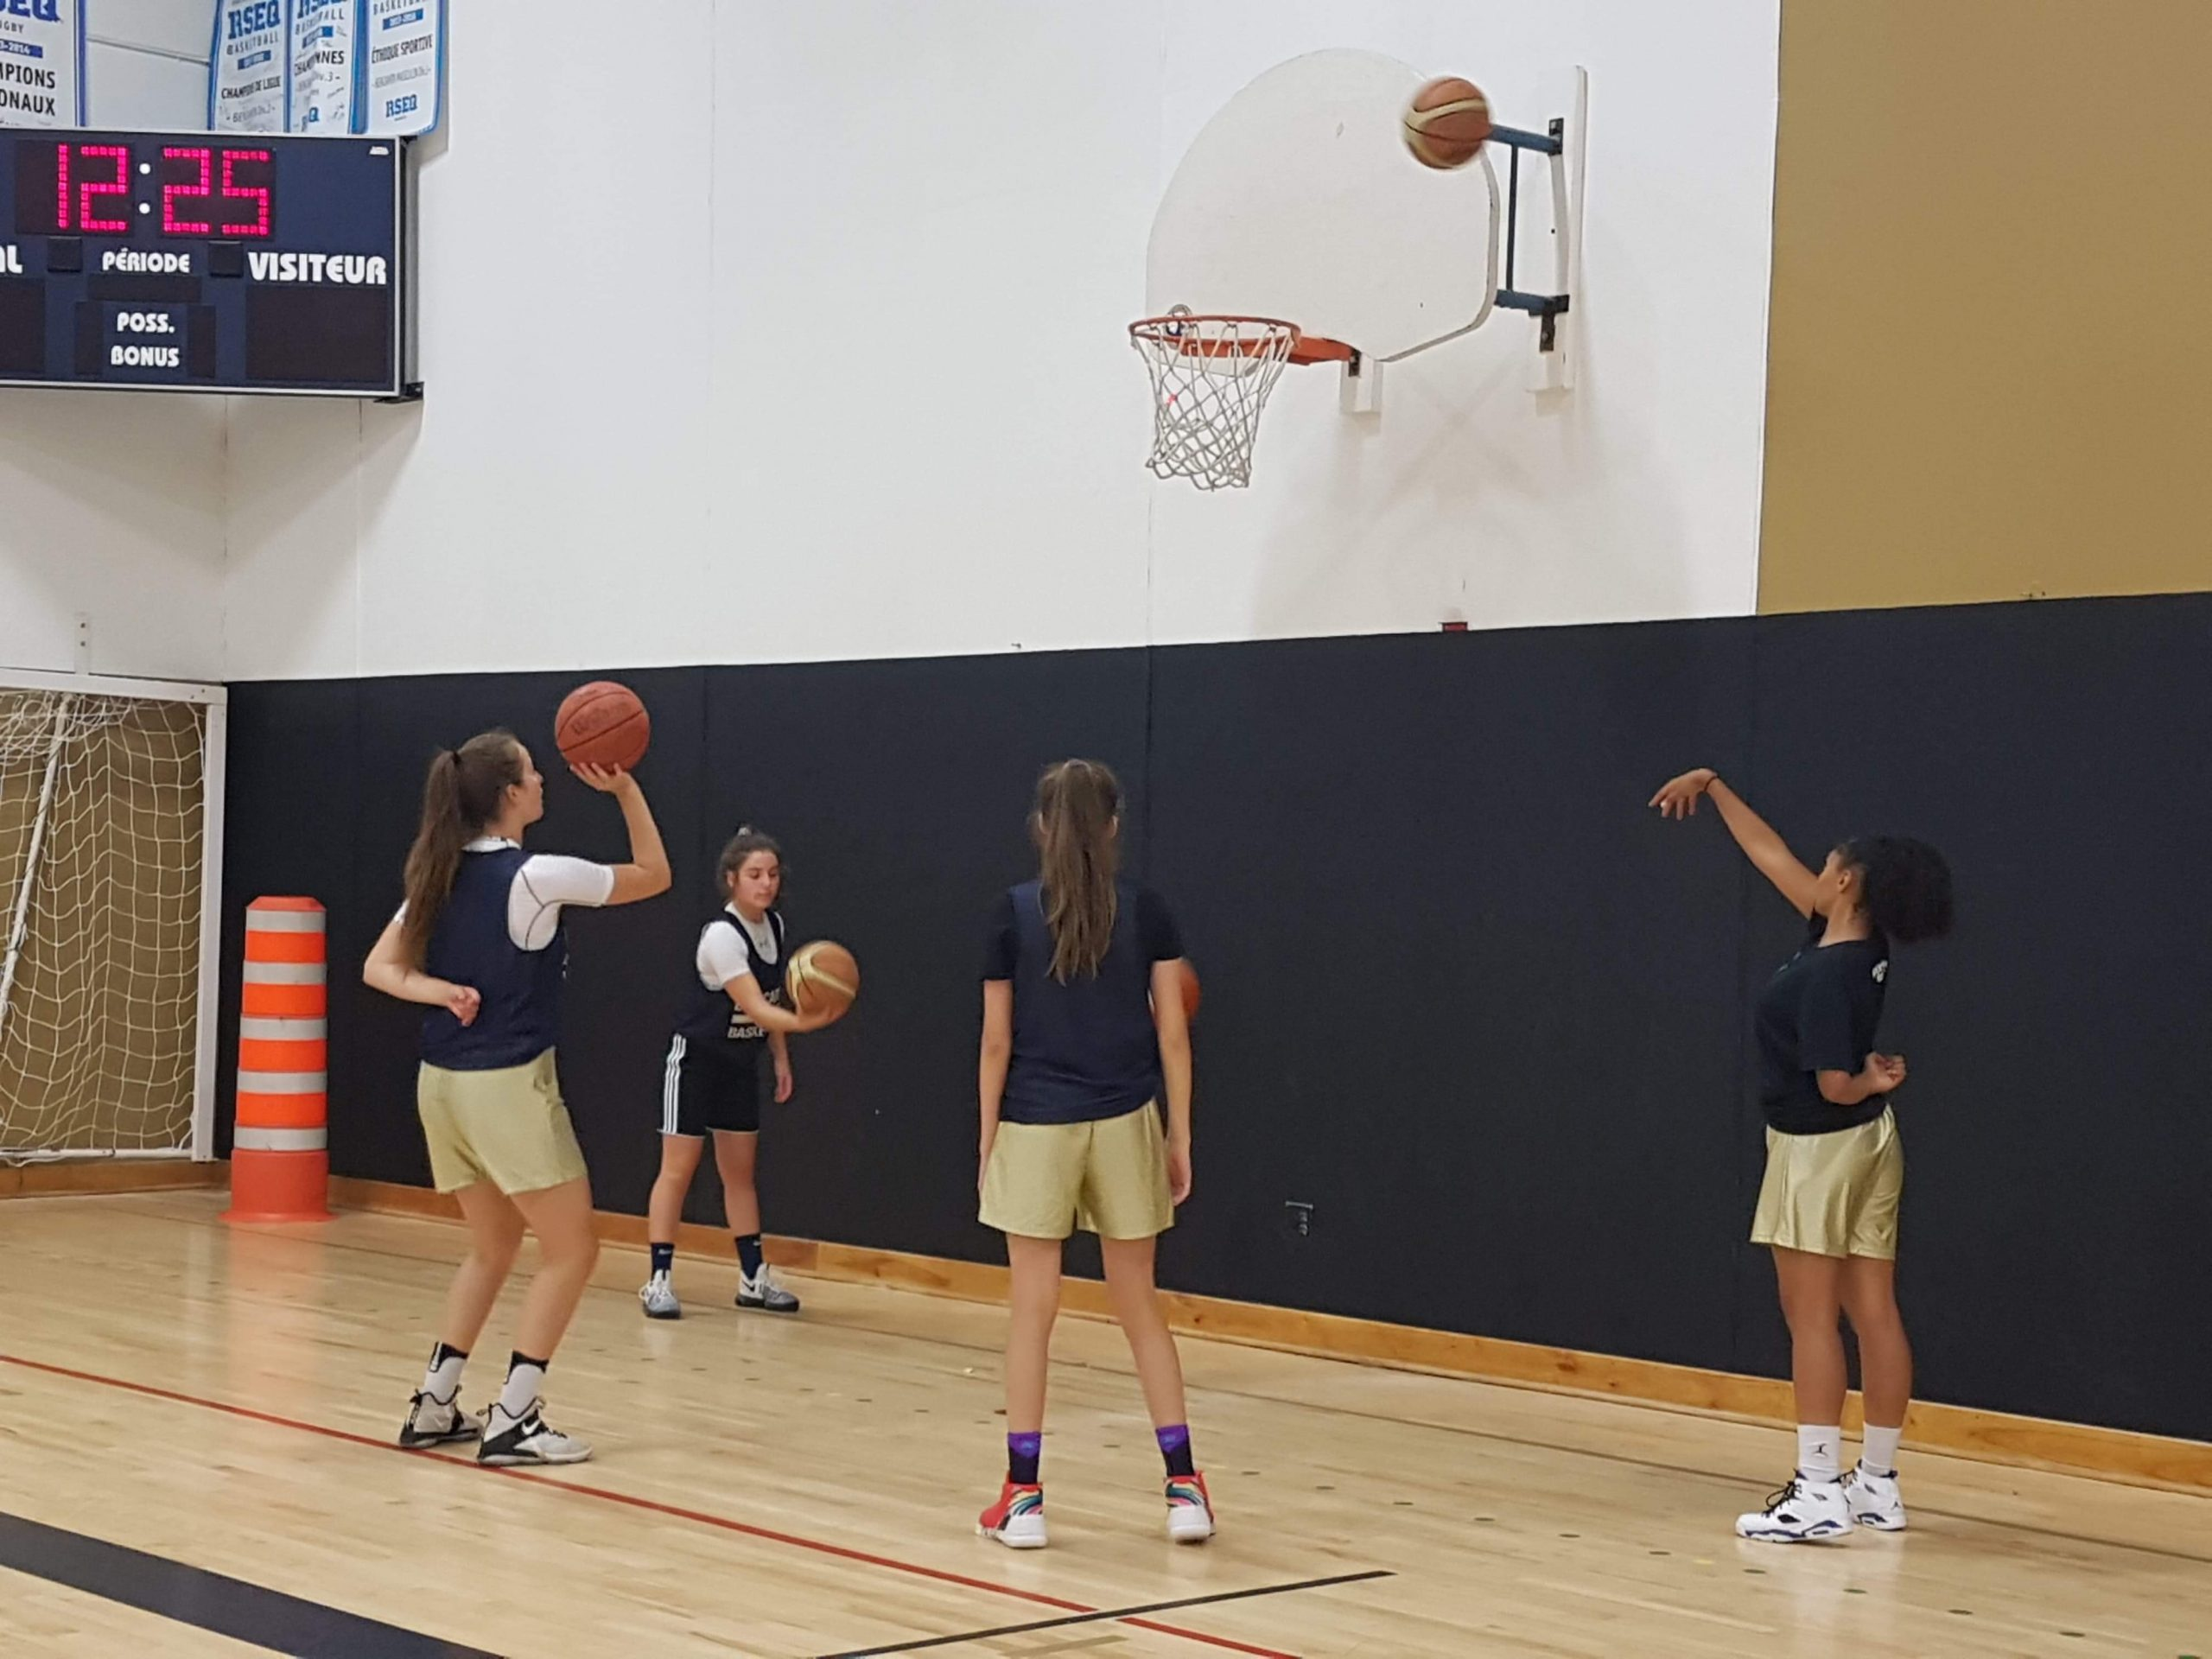 Camp basketball VITAL 2018 - 08